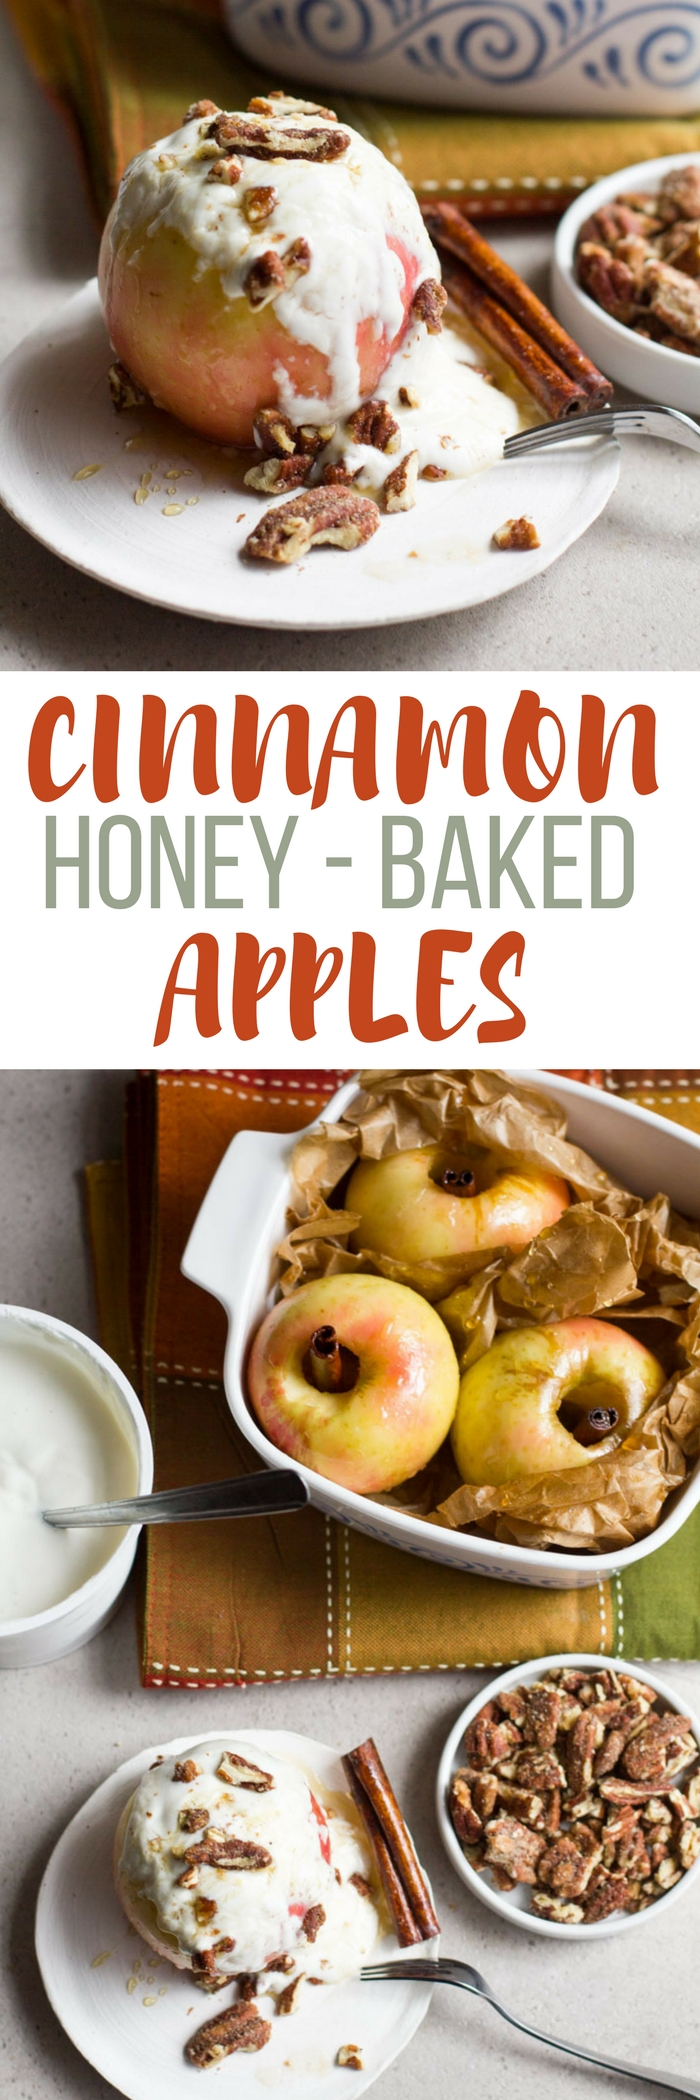 An awesome fall dessert that can be enjoyed anytime of year. These cinnamon honey-baked apples are the perfect dessert when you want all of the flavors of apple pie! #ad